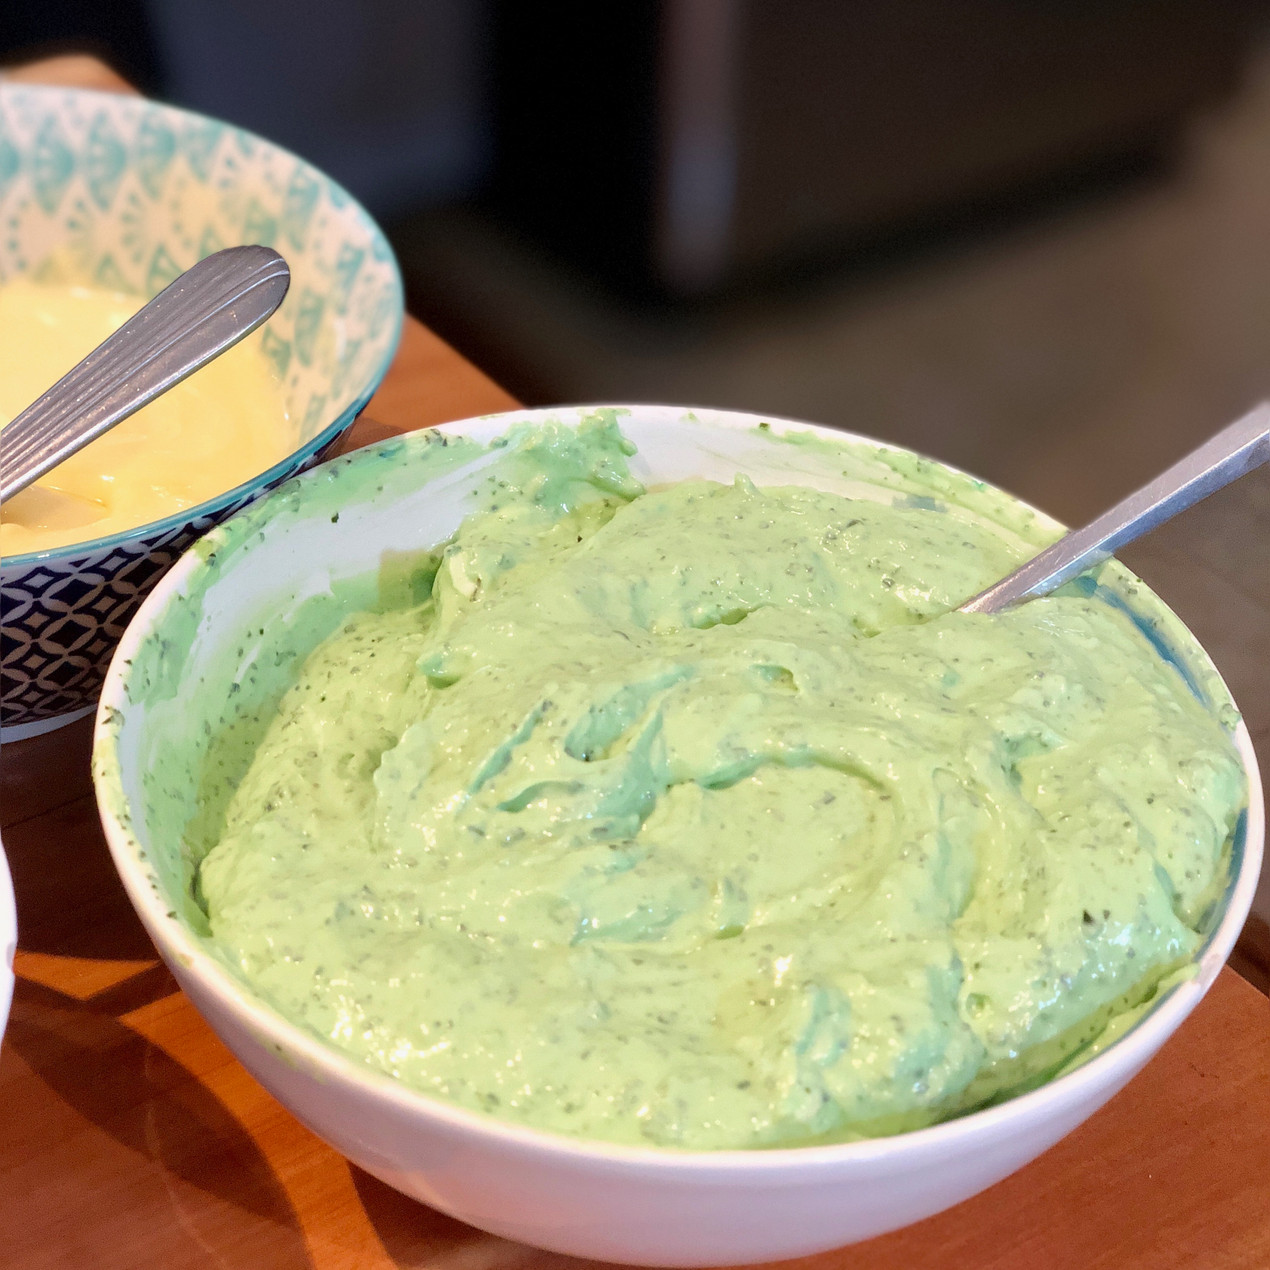 Watercress spread